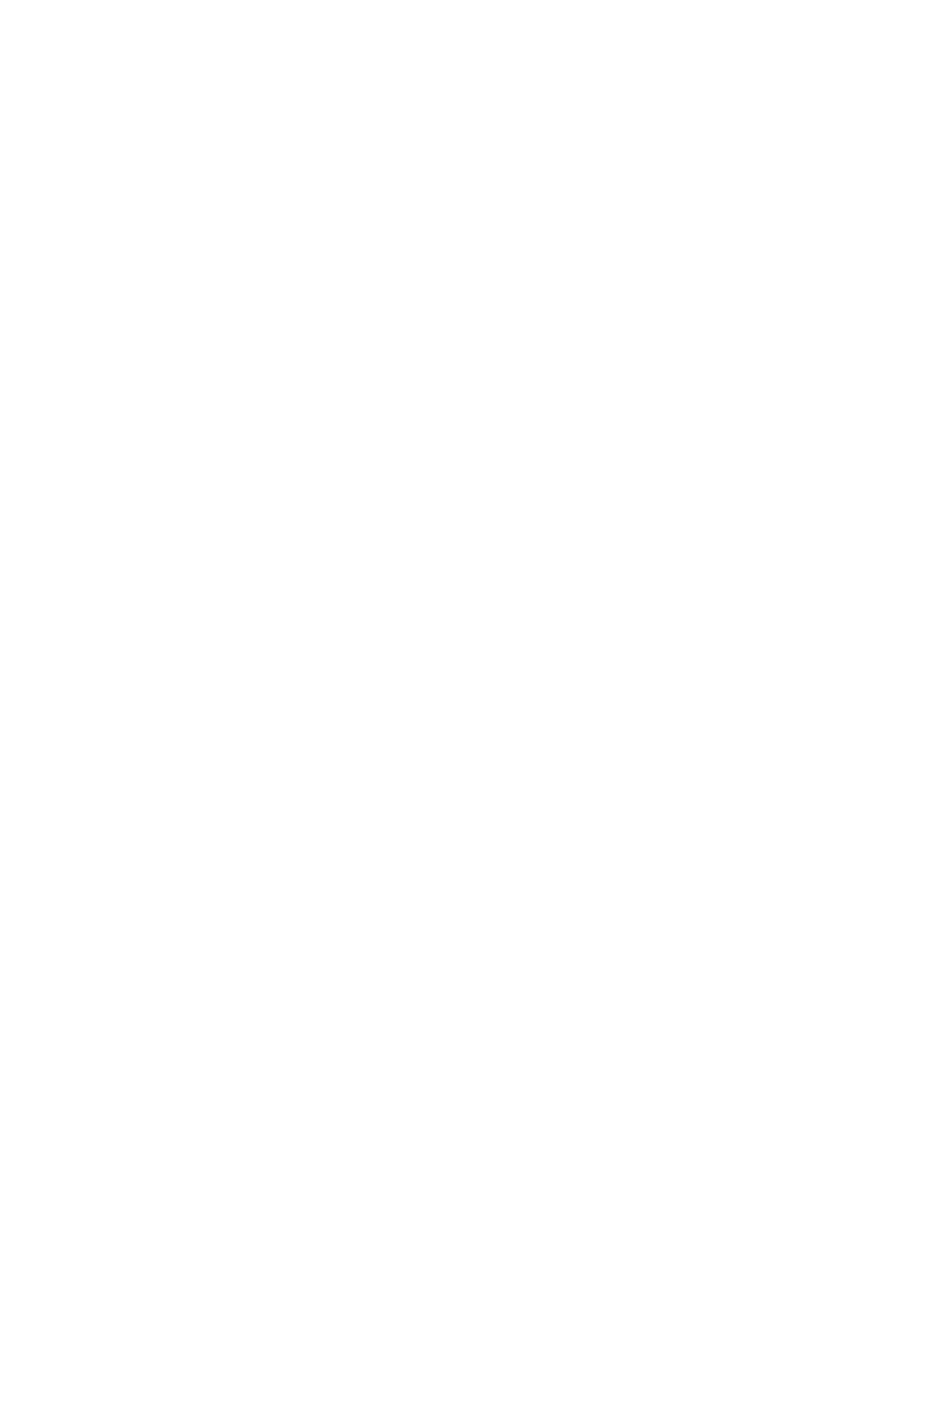 Weltmeister-Kaffee COCAGI limited edition Cup of Excellence Gewinner Ruanda